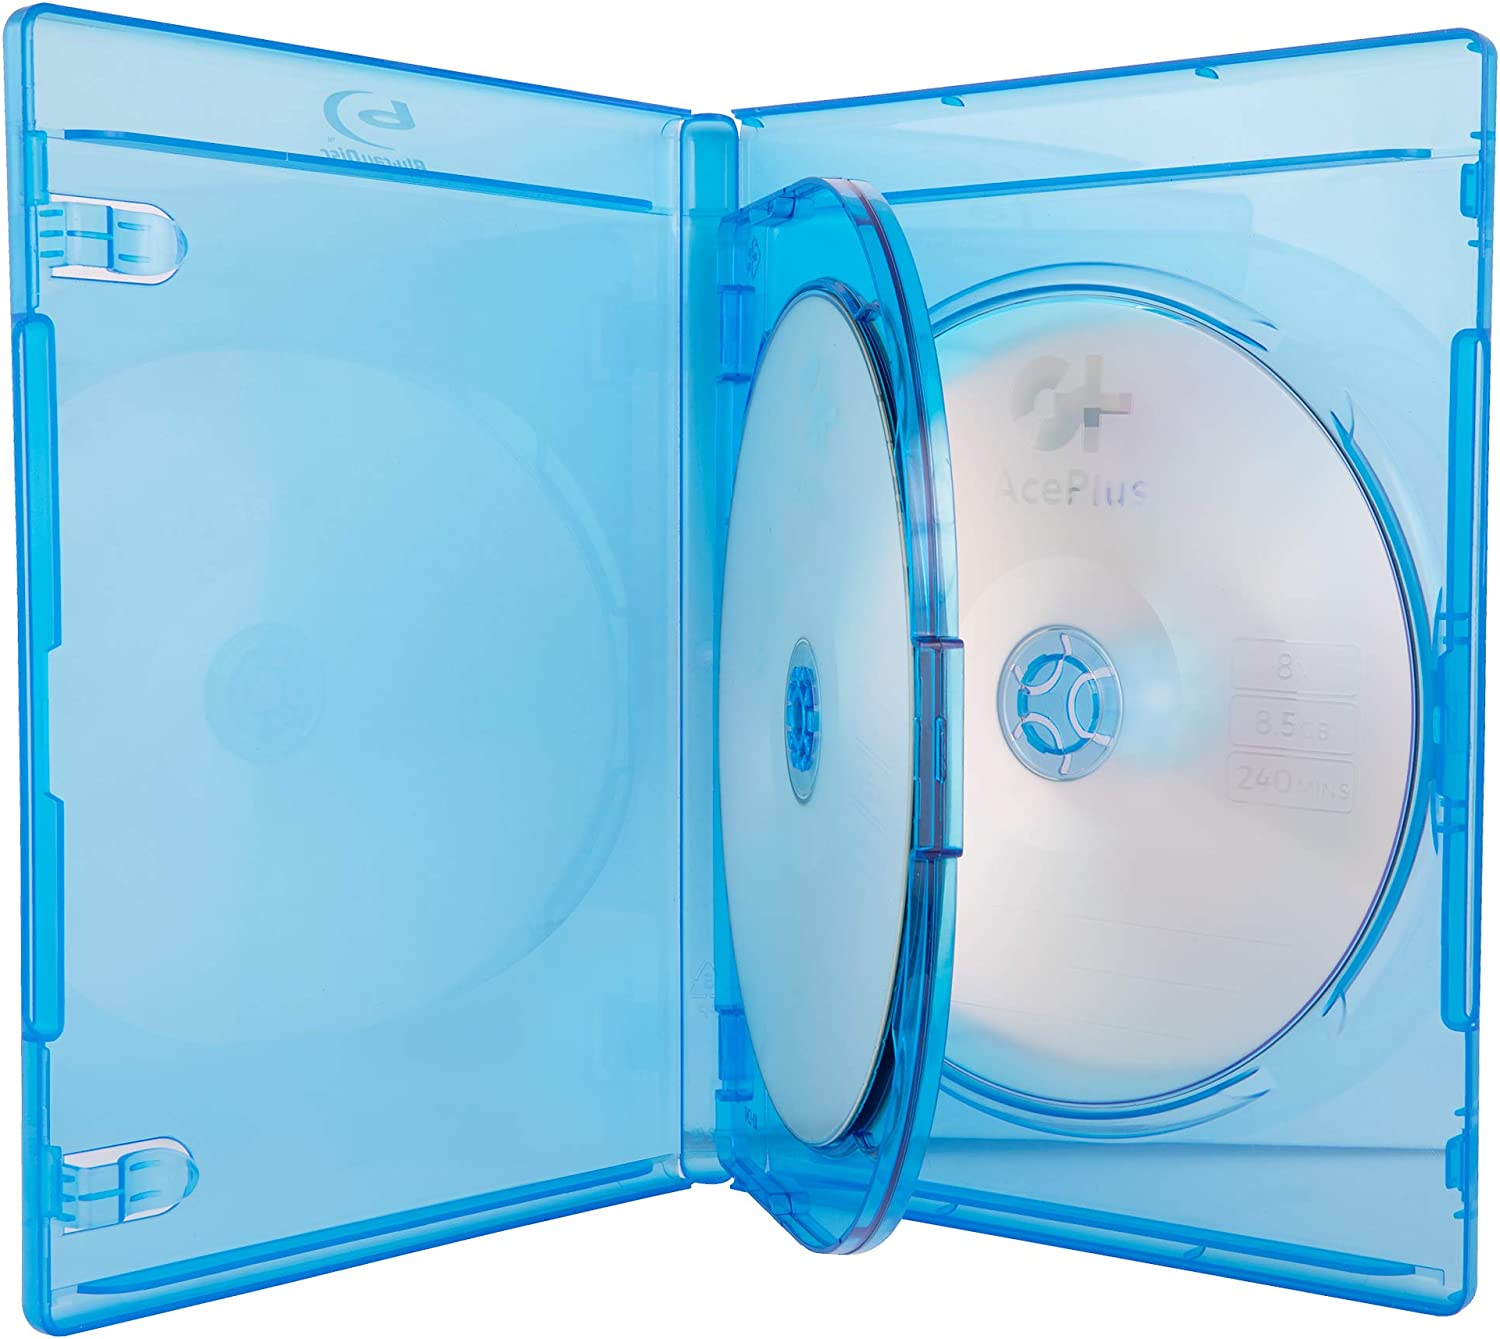 AcePlus 25 Pieces Premium Blu-ray Replacement Case 12mm Triple for 3 Discs with Screen Printed Logo and Wrap Around Clear Plastic.